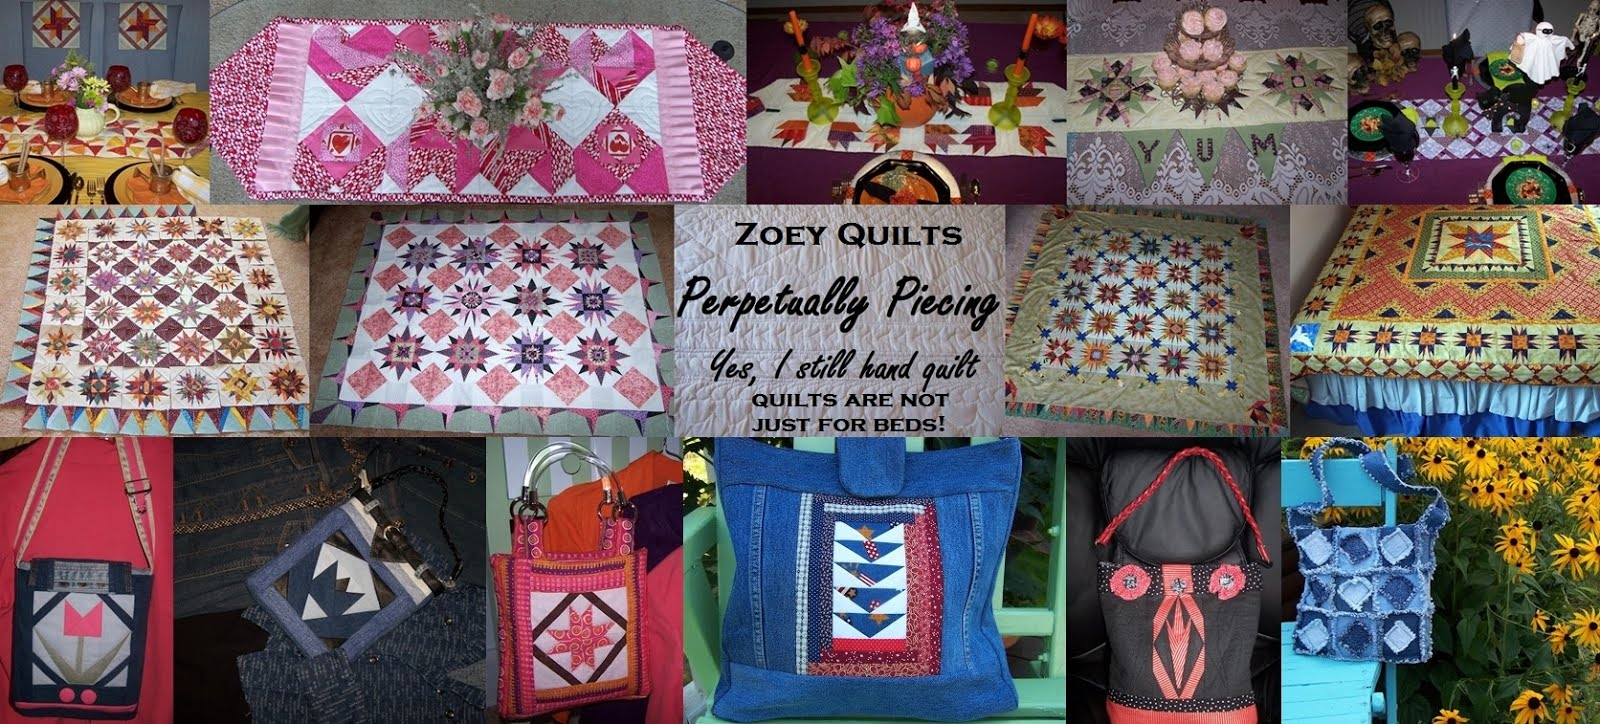 Zoey Quilts